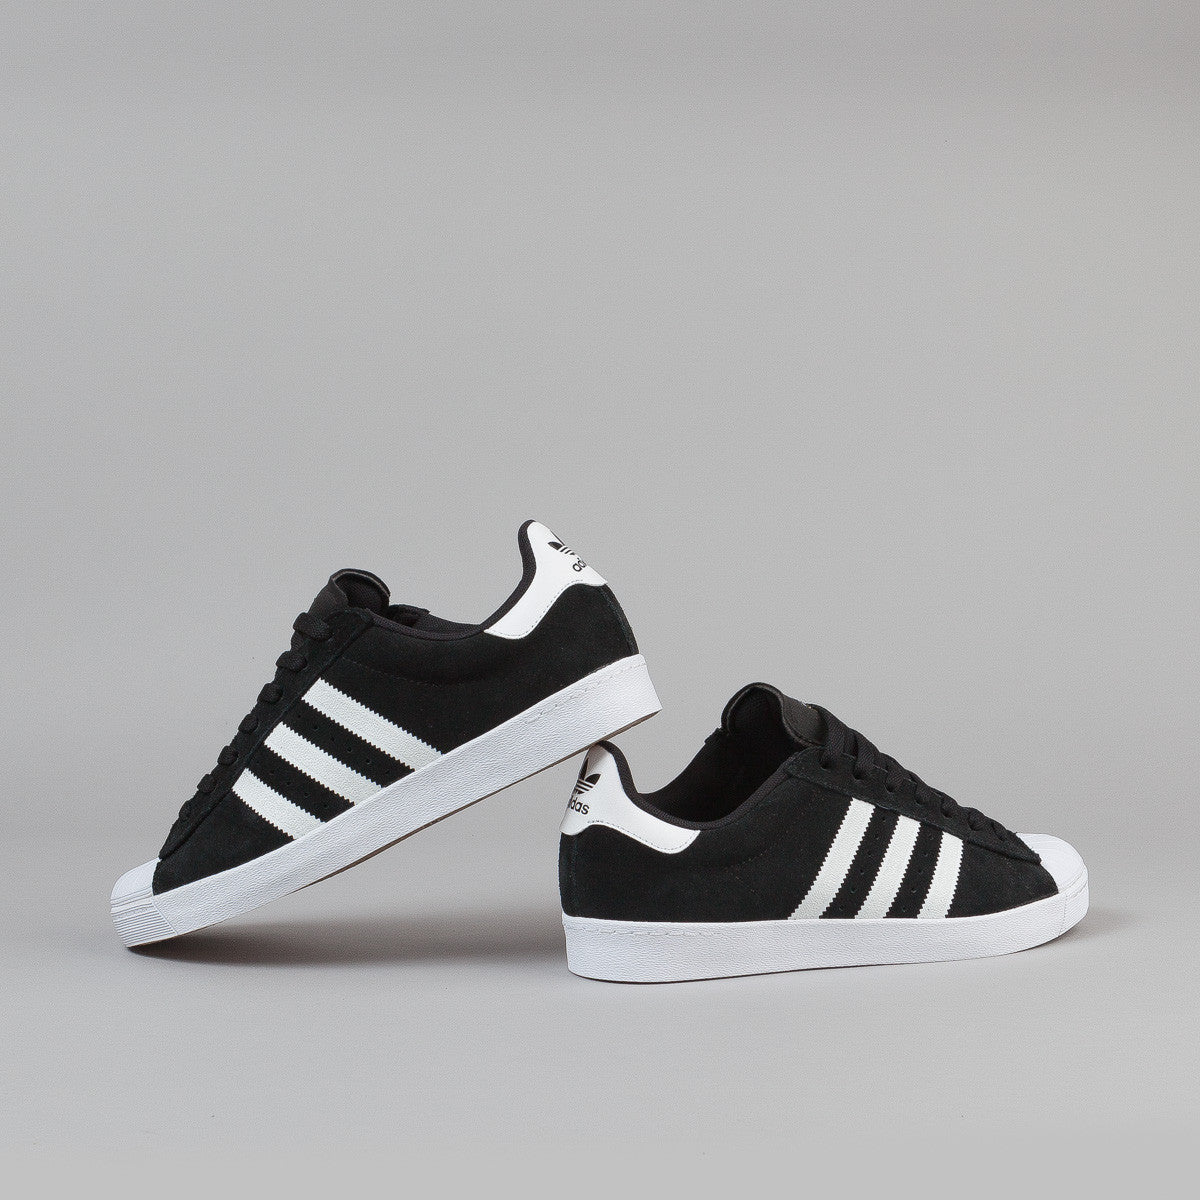 Adidas Superstar Vulc Skate Shoes Zumiez Cheap Superstar ADV